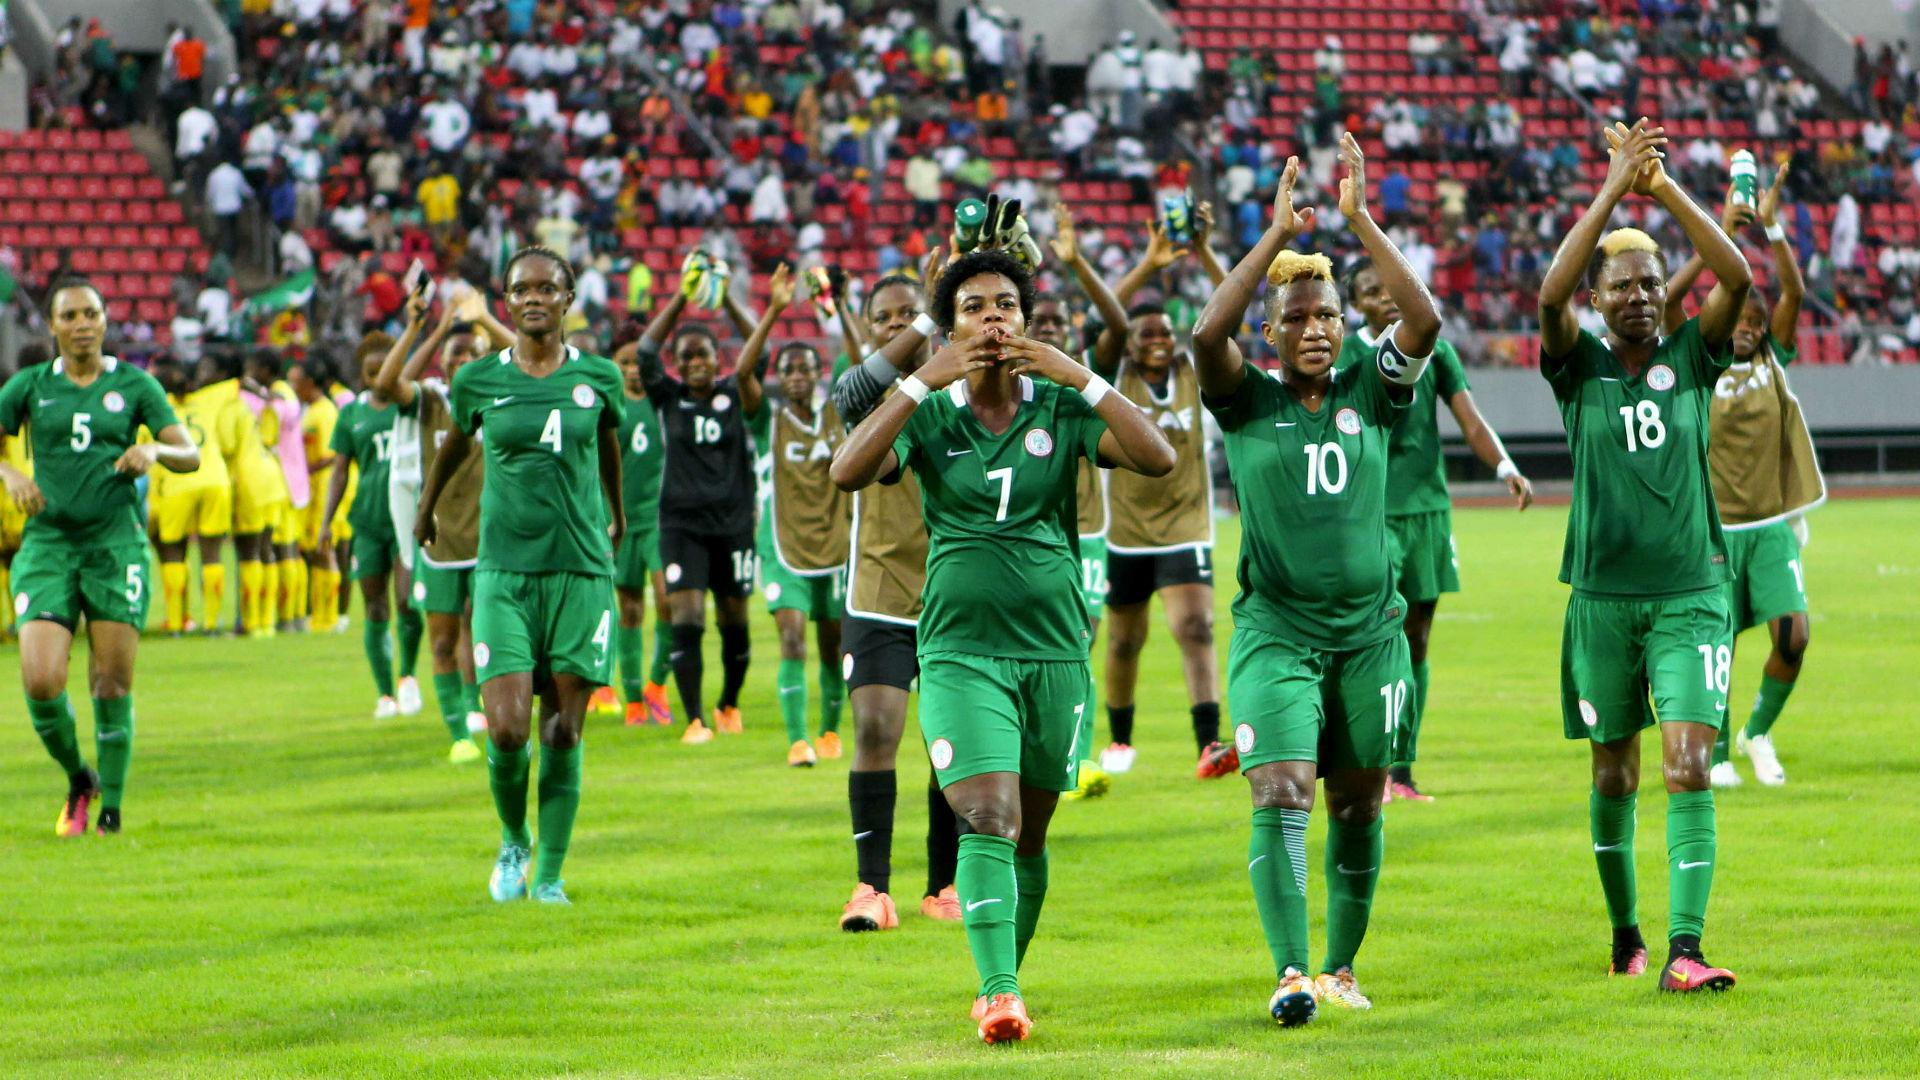 Super Falcons get hostile reception in Yaounde